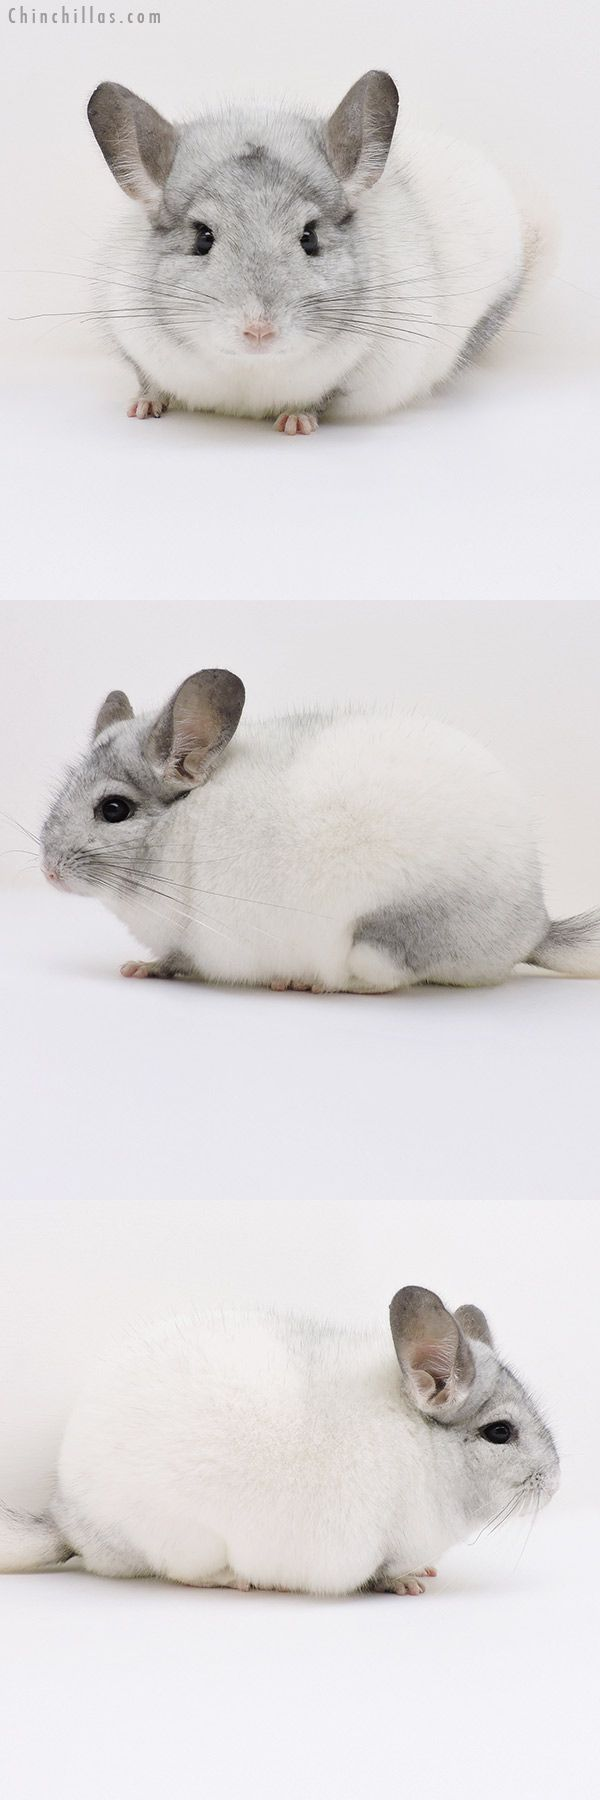 Blocky Show Quality White Mosaic Male Chinchilla